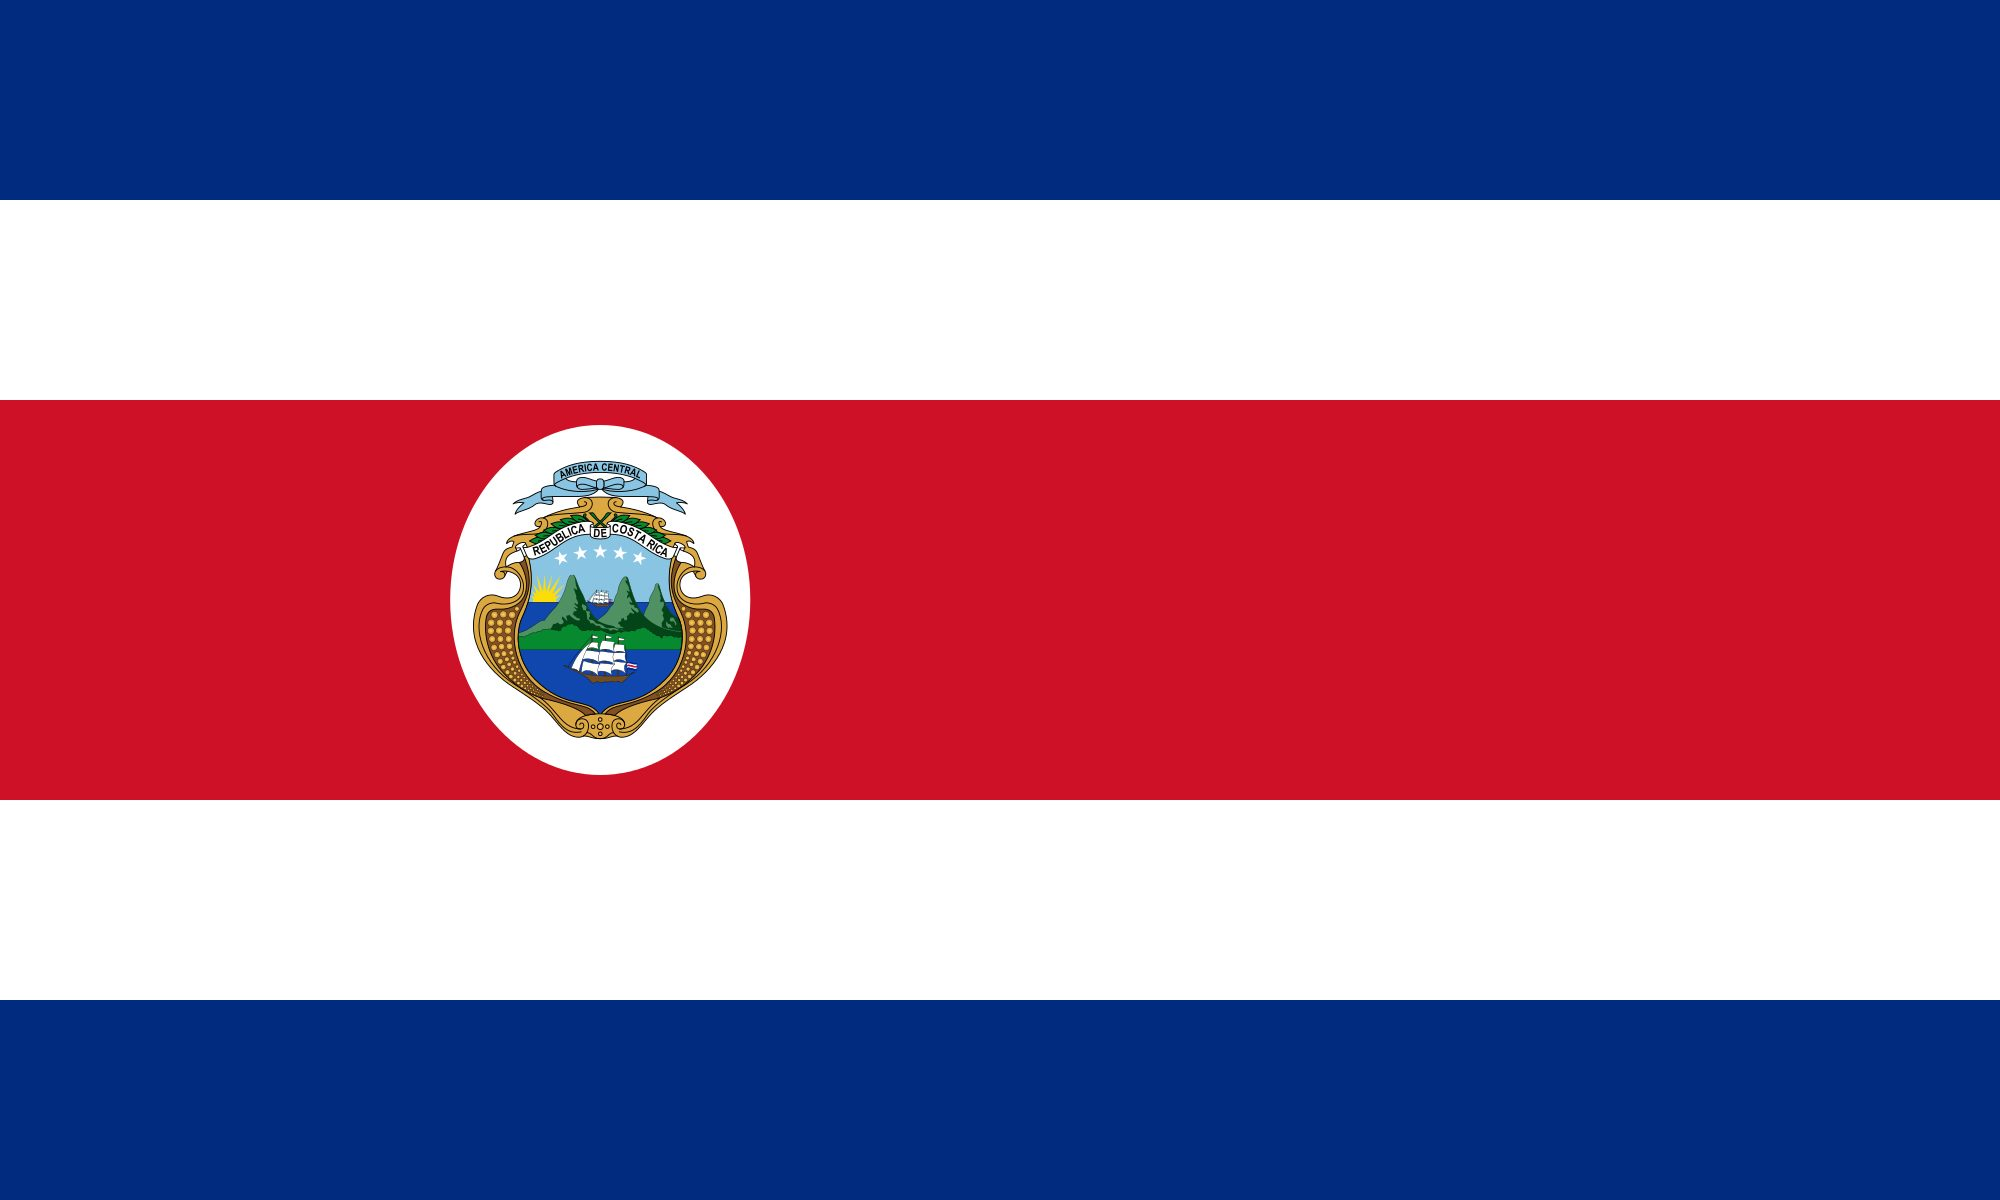 Costa Rica (I) – The Football